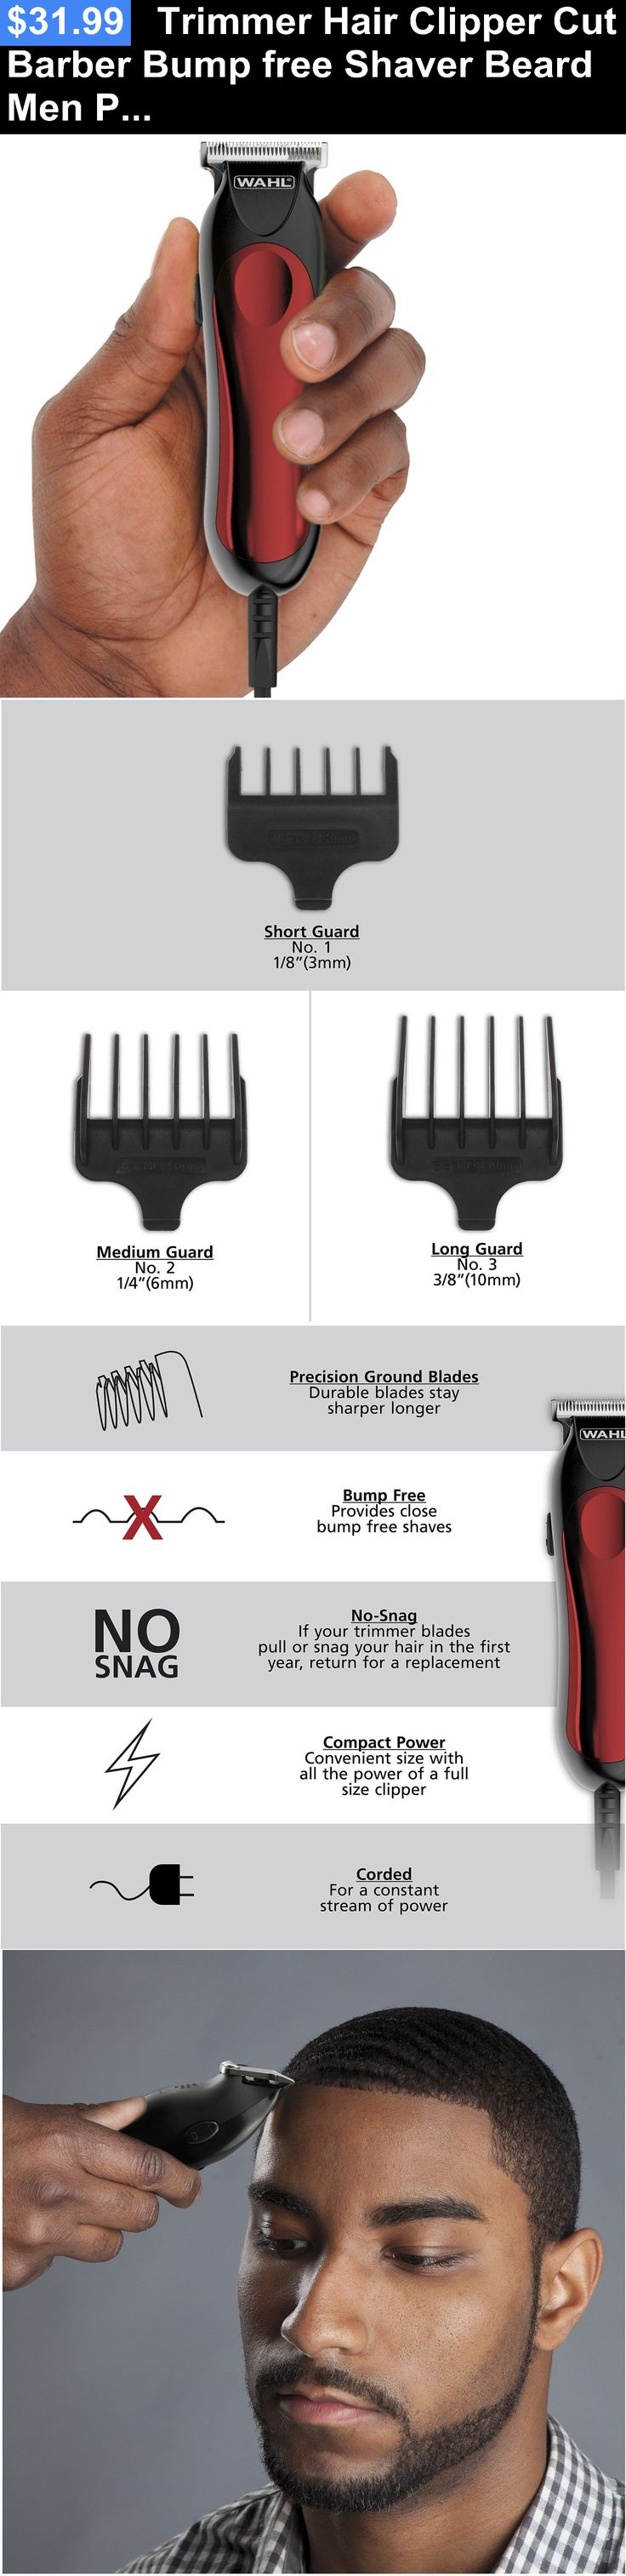 Clippers and Trimmers: Trimmer Hair Clipper Cut Barber Bump Free Shaver Beard Men Professional Kit New BUY IT NOW ONLY: $31.99